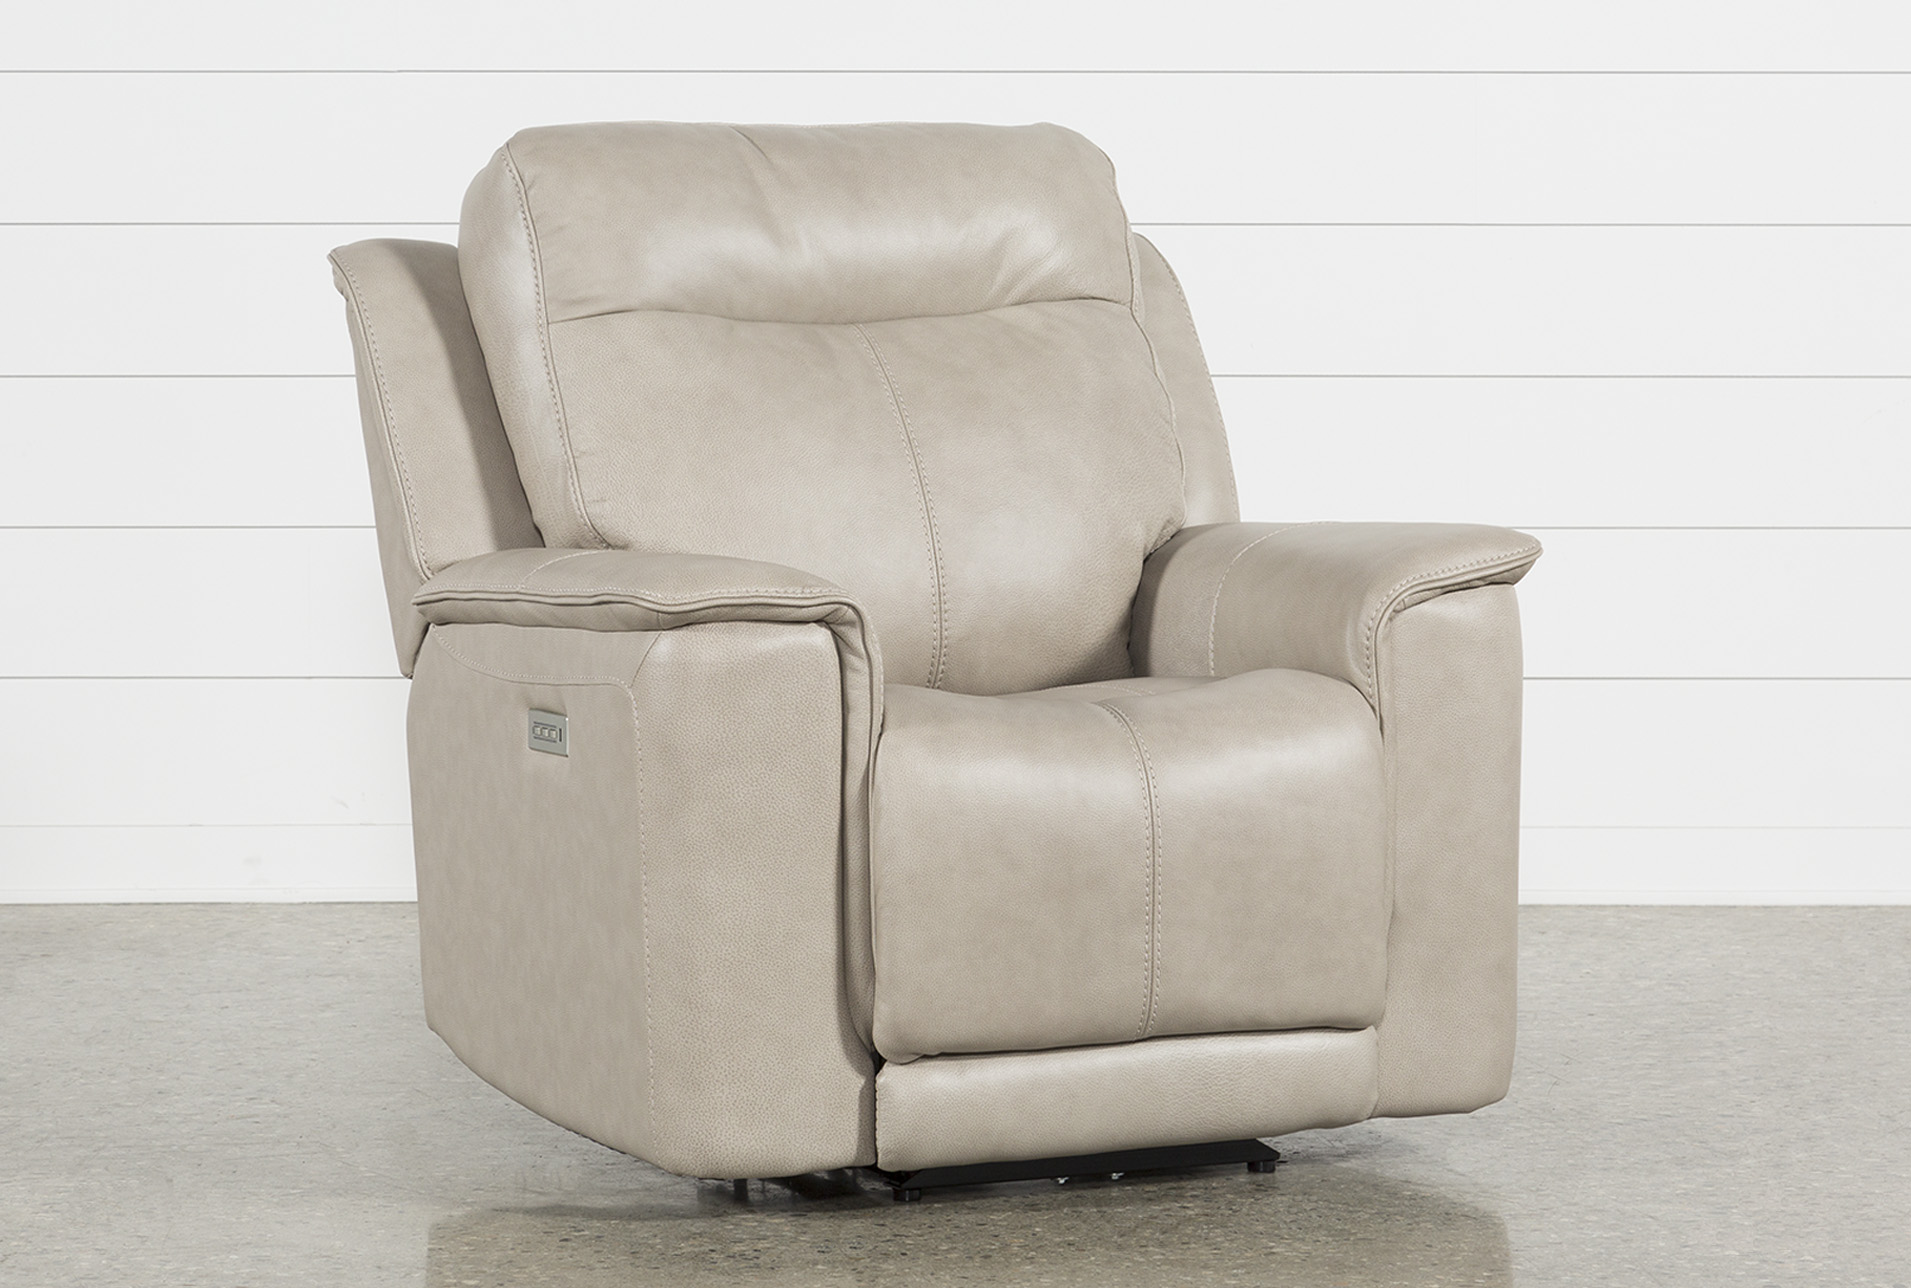 Merveilleux Walsh Dove Power Recliner W/Power Headrest, Lumbar U0026 Usb